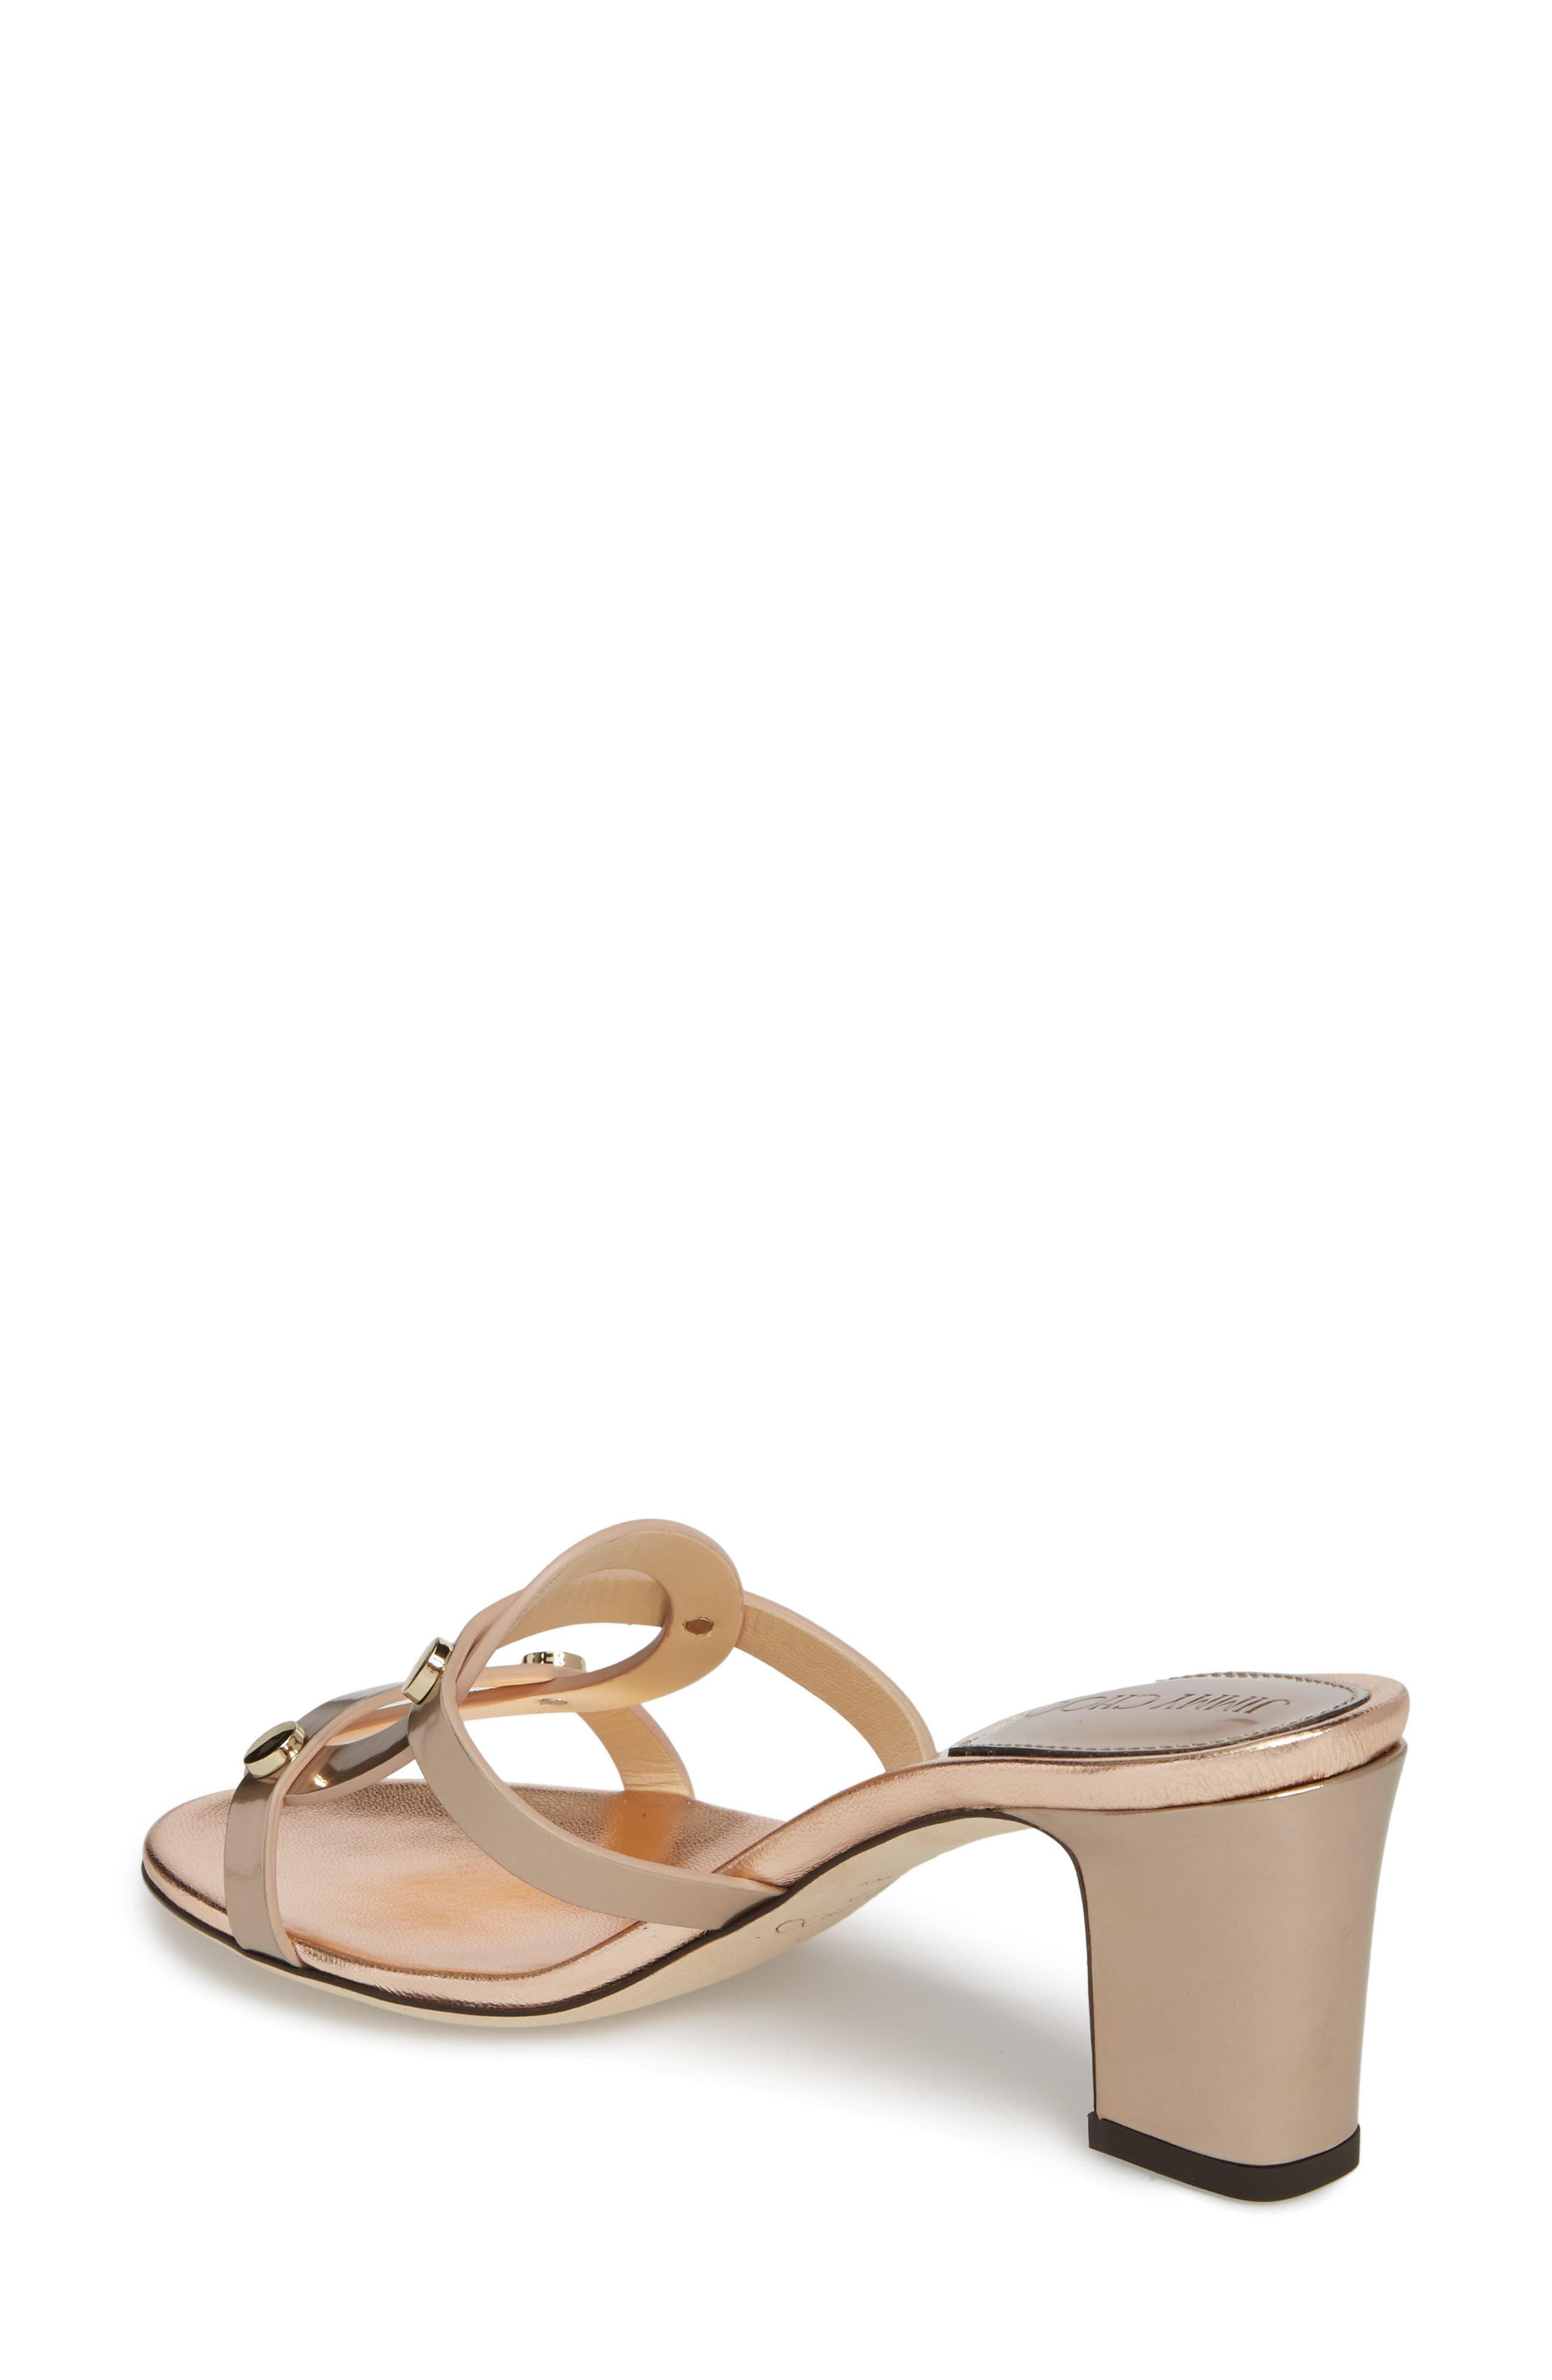 Damaris Strappy Slide Sandal,                             Alternate thumbnail 2, color,                             680